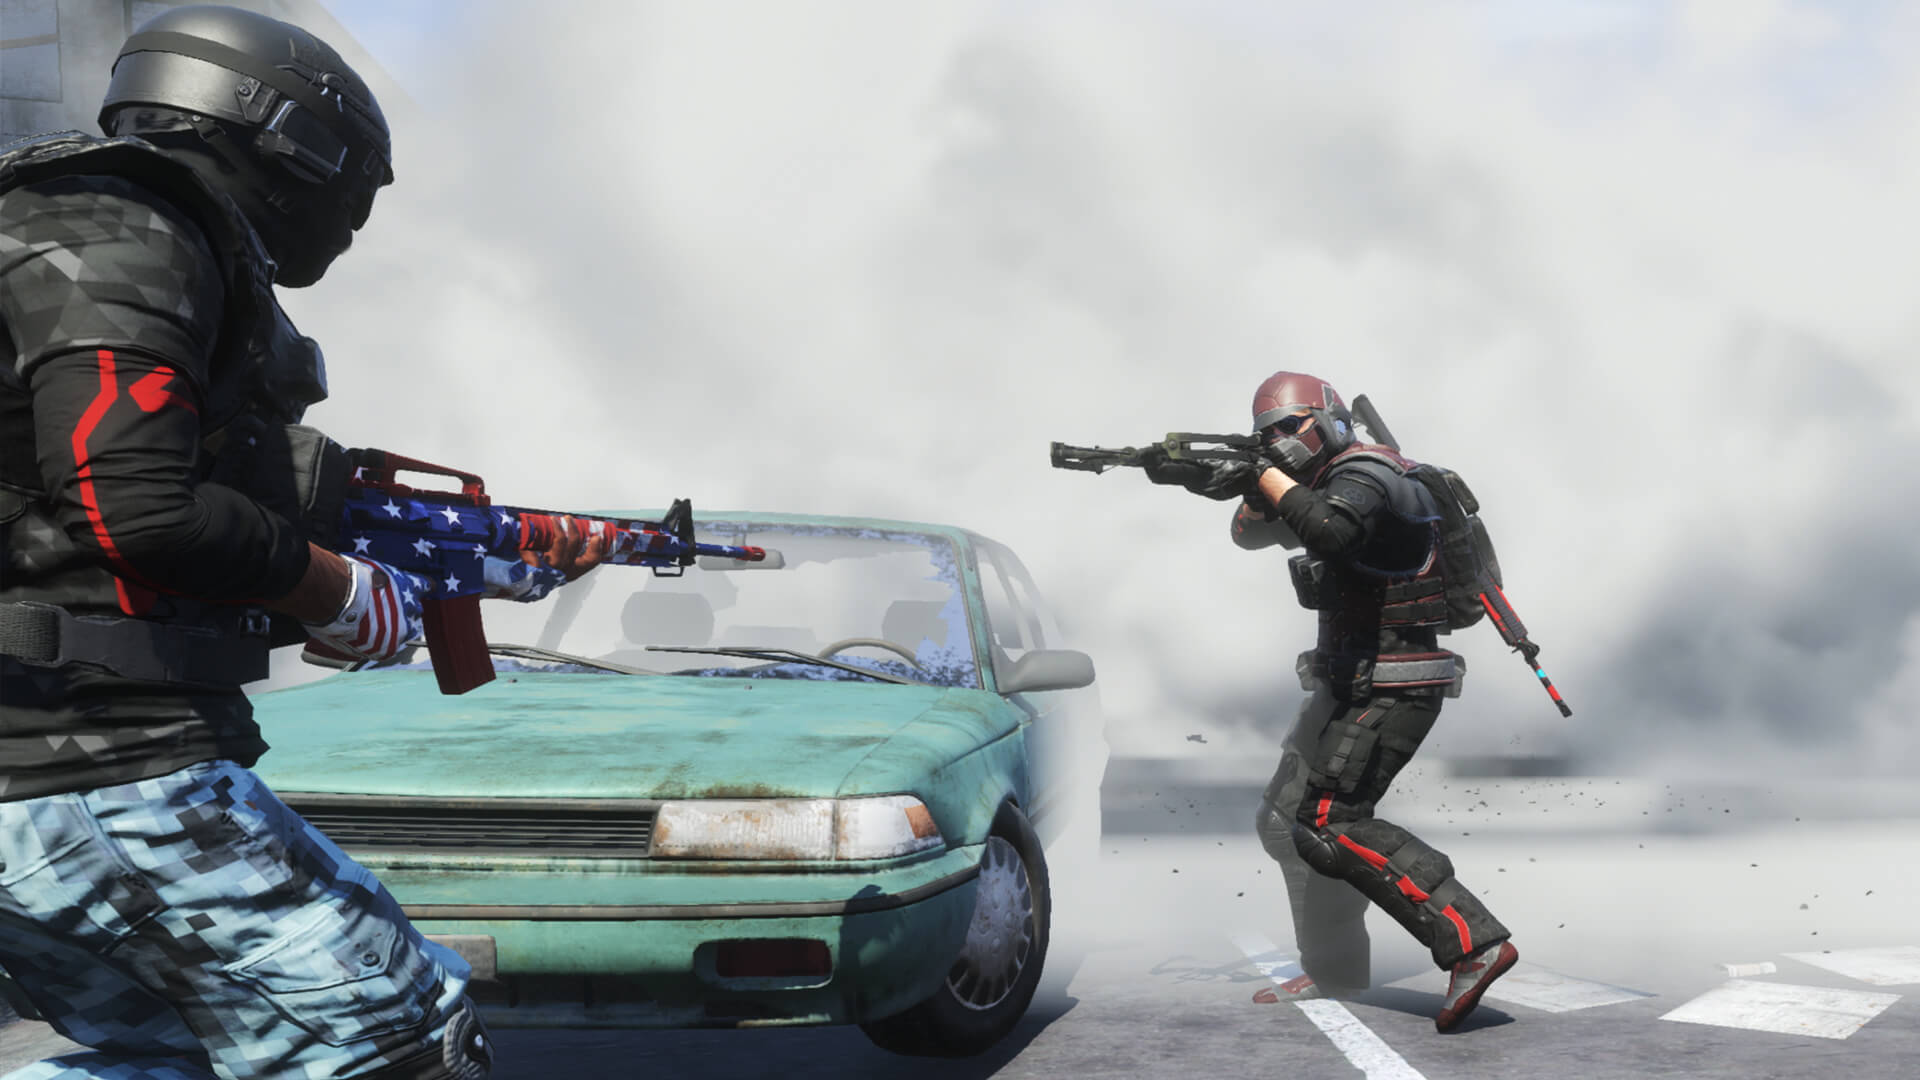 H1Z1: What Are The Developers Doing?